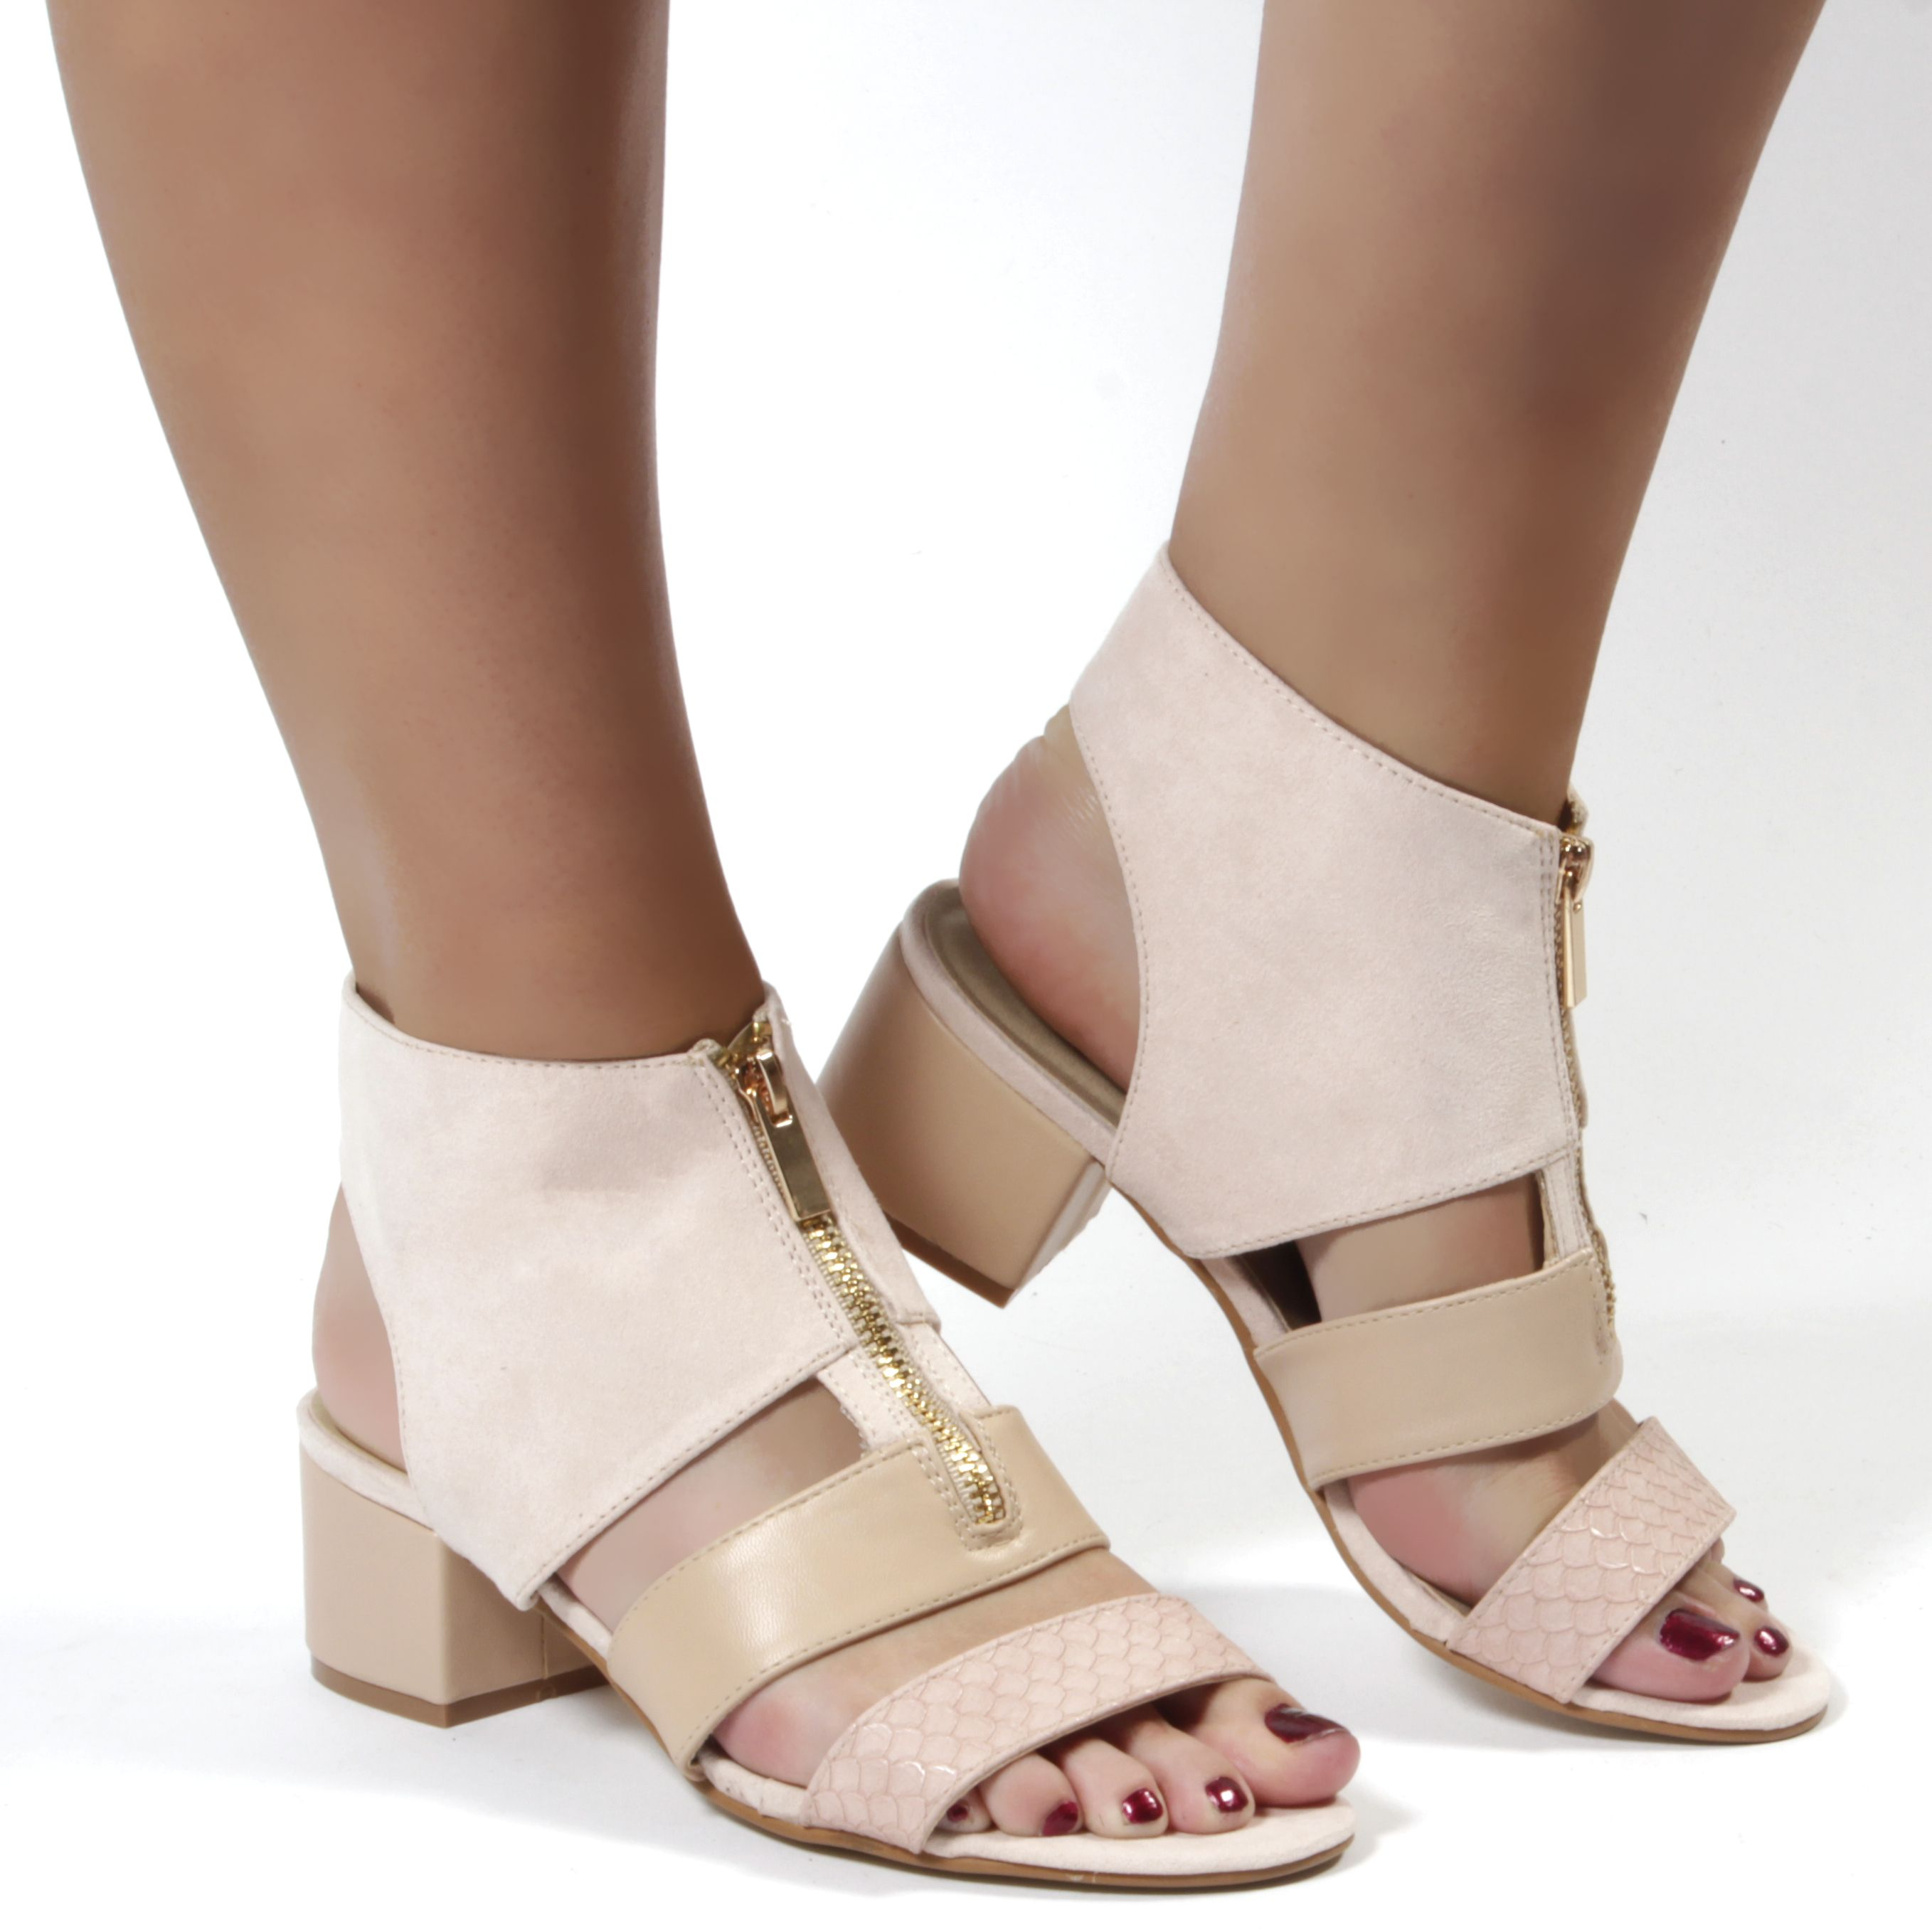 2891d9a31935 Summer sandals are SORTED these adley30 womens baby pink block sandals will  keep you feeling cool and fresh this summer